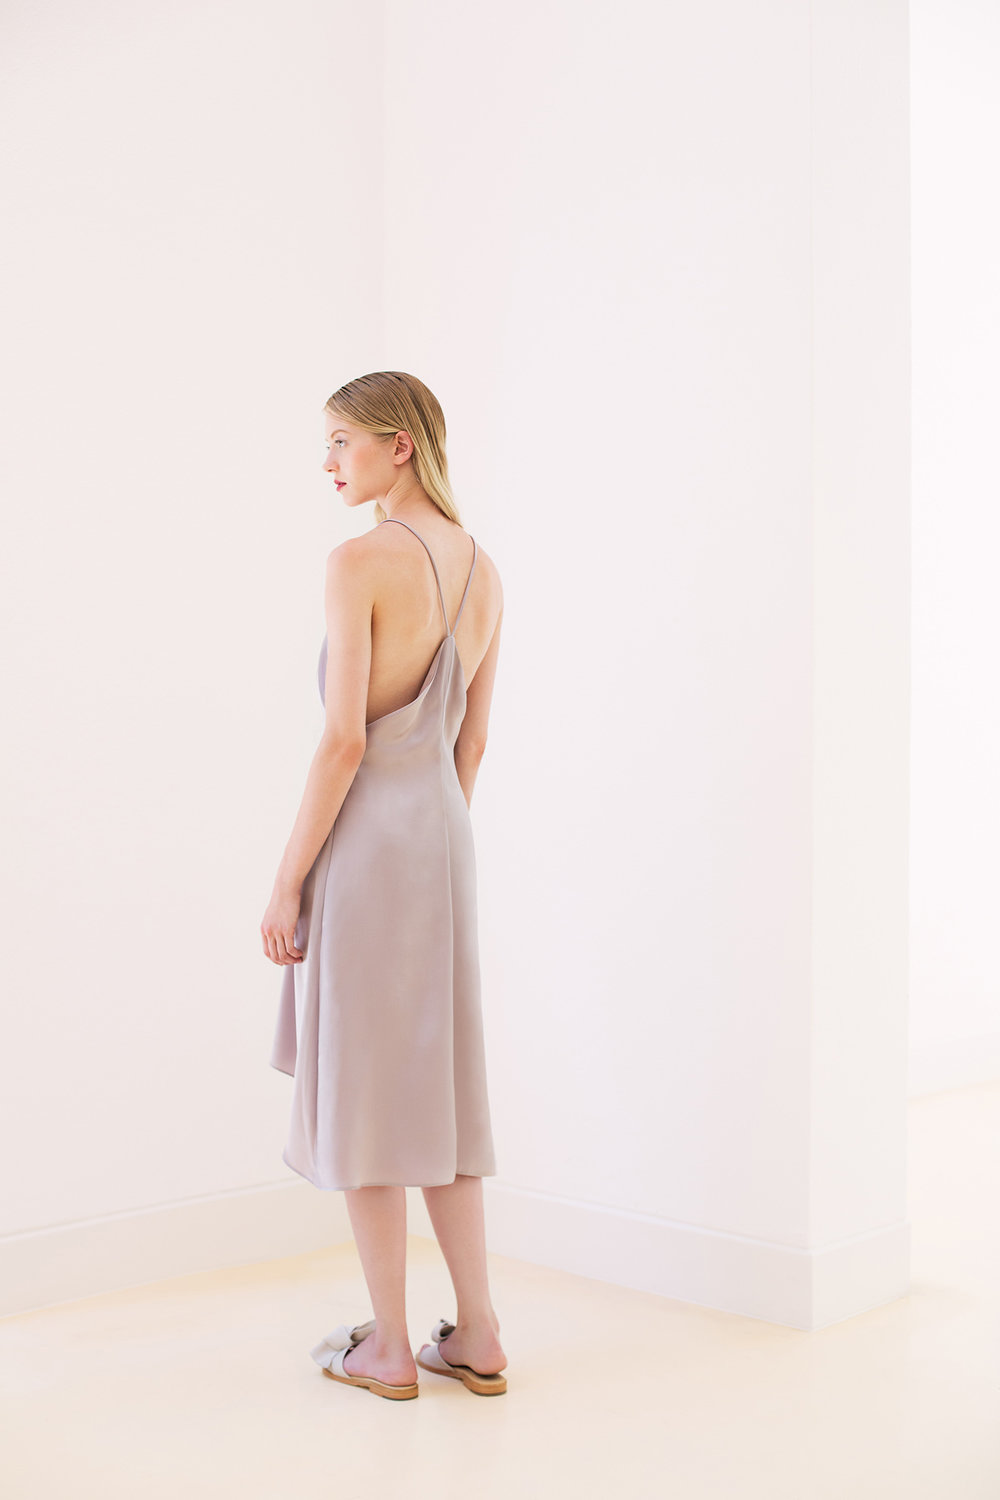 IMAUVE_Lookbook_SS17_Low Res_15.jpg